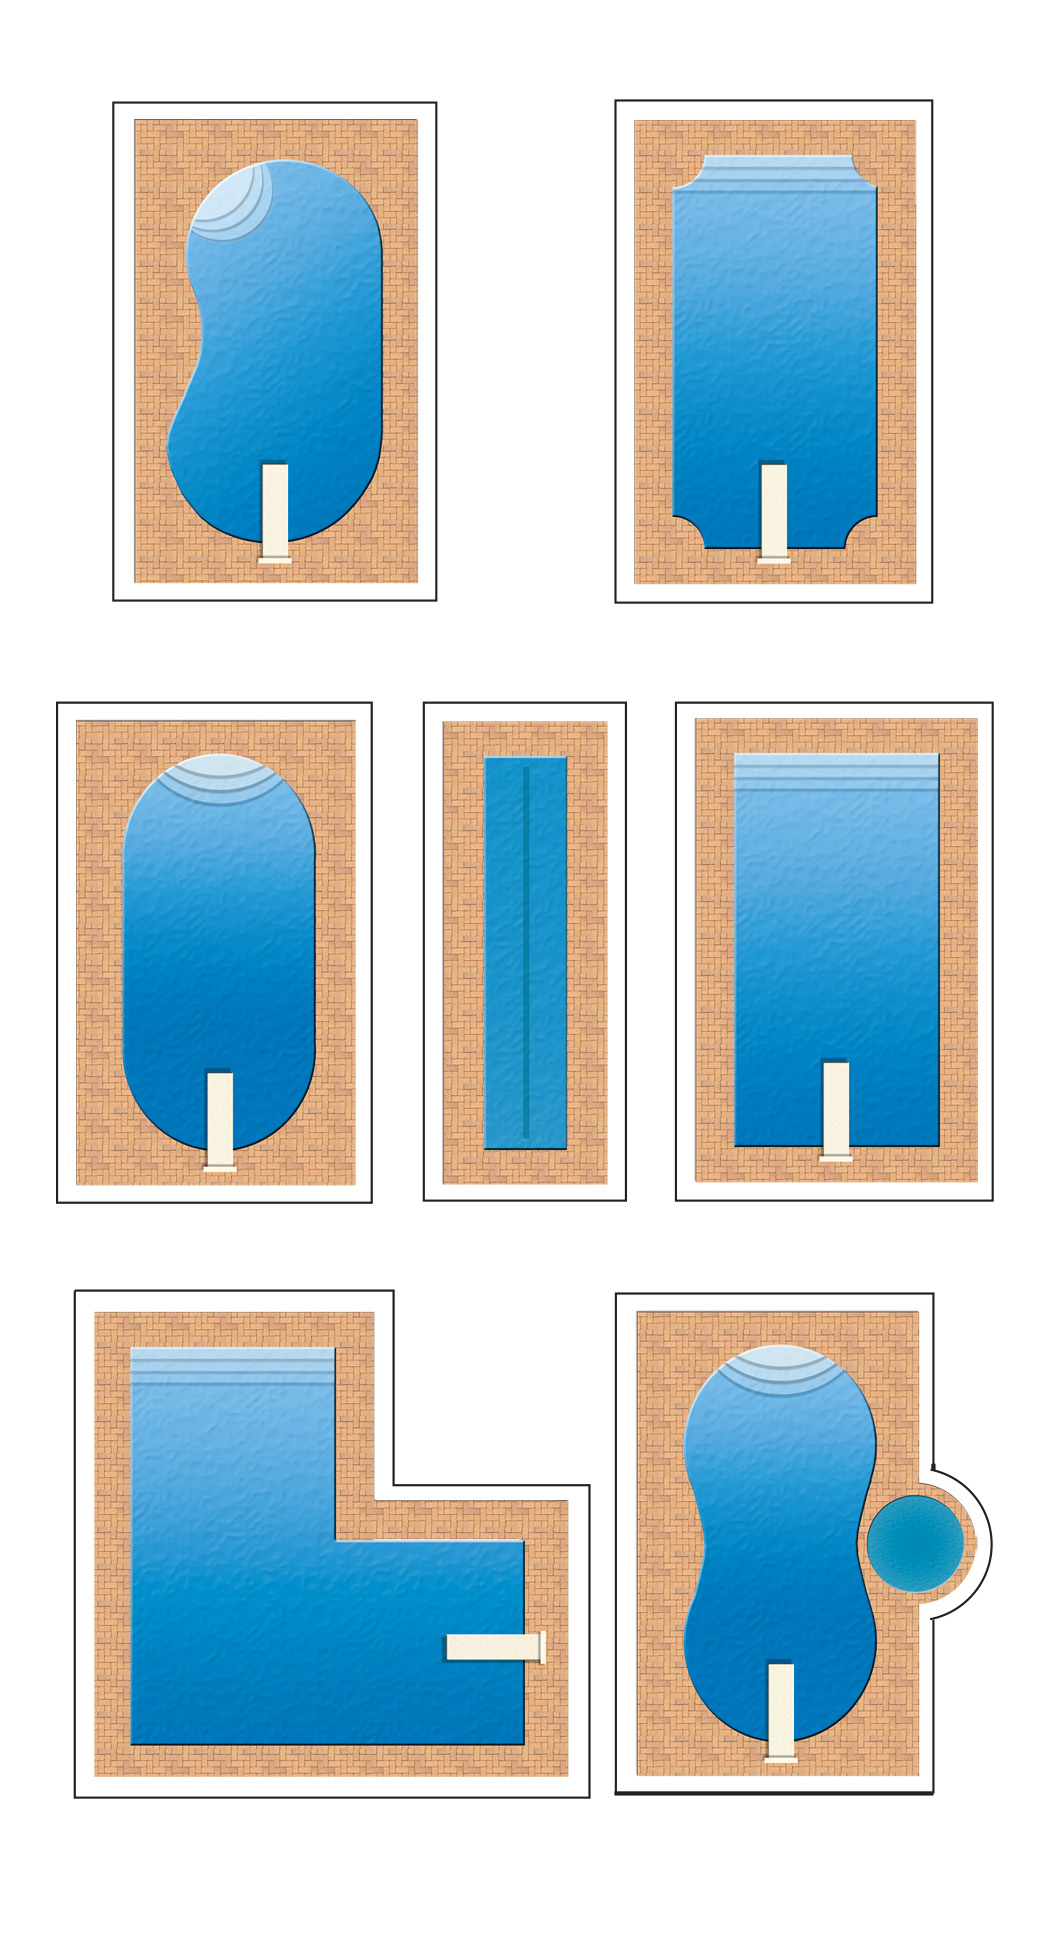 pool shapes